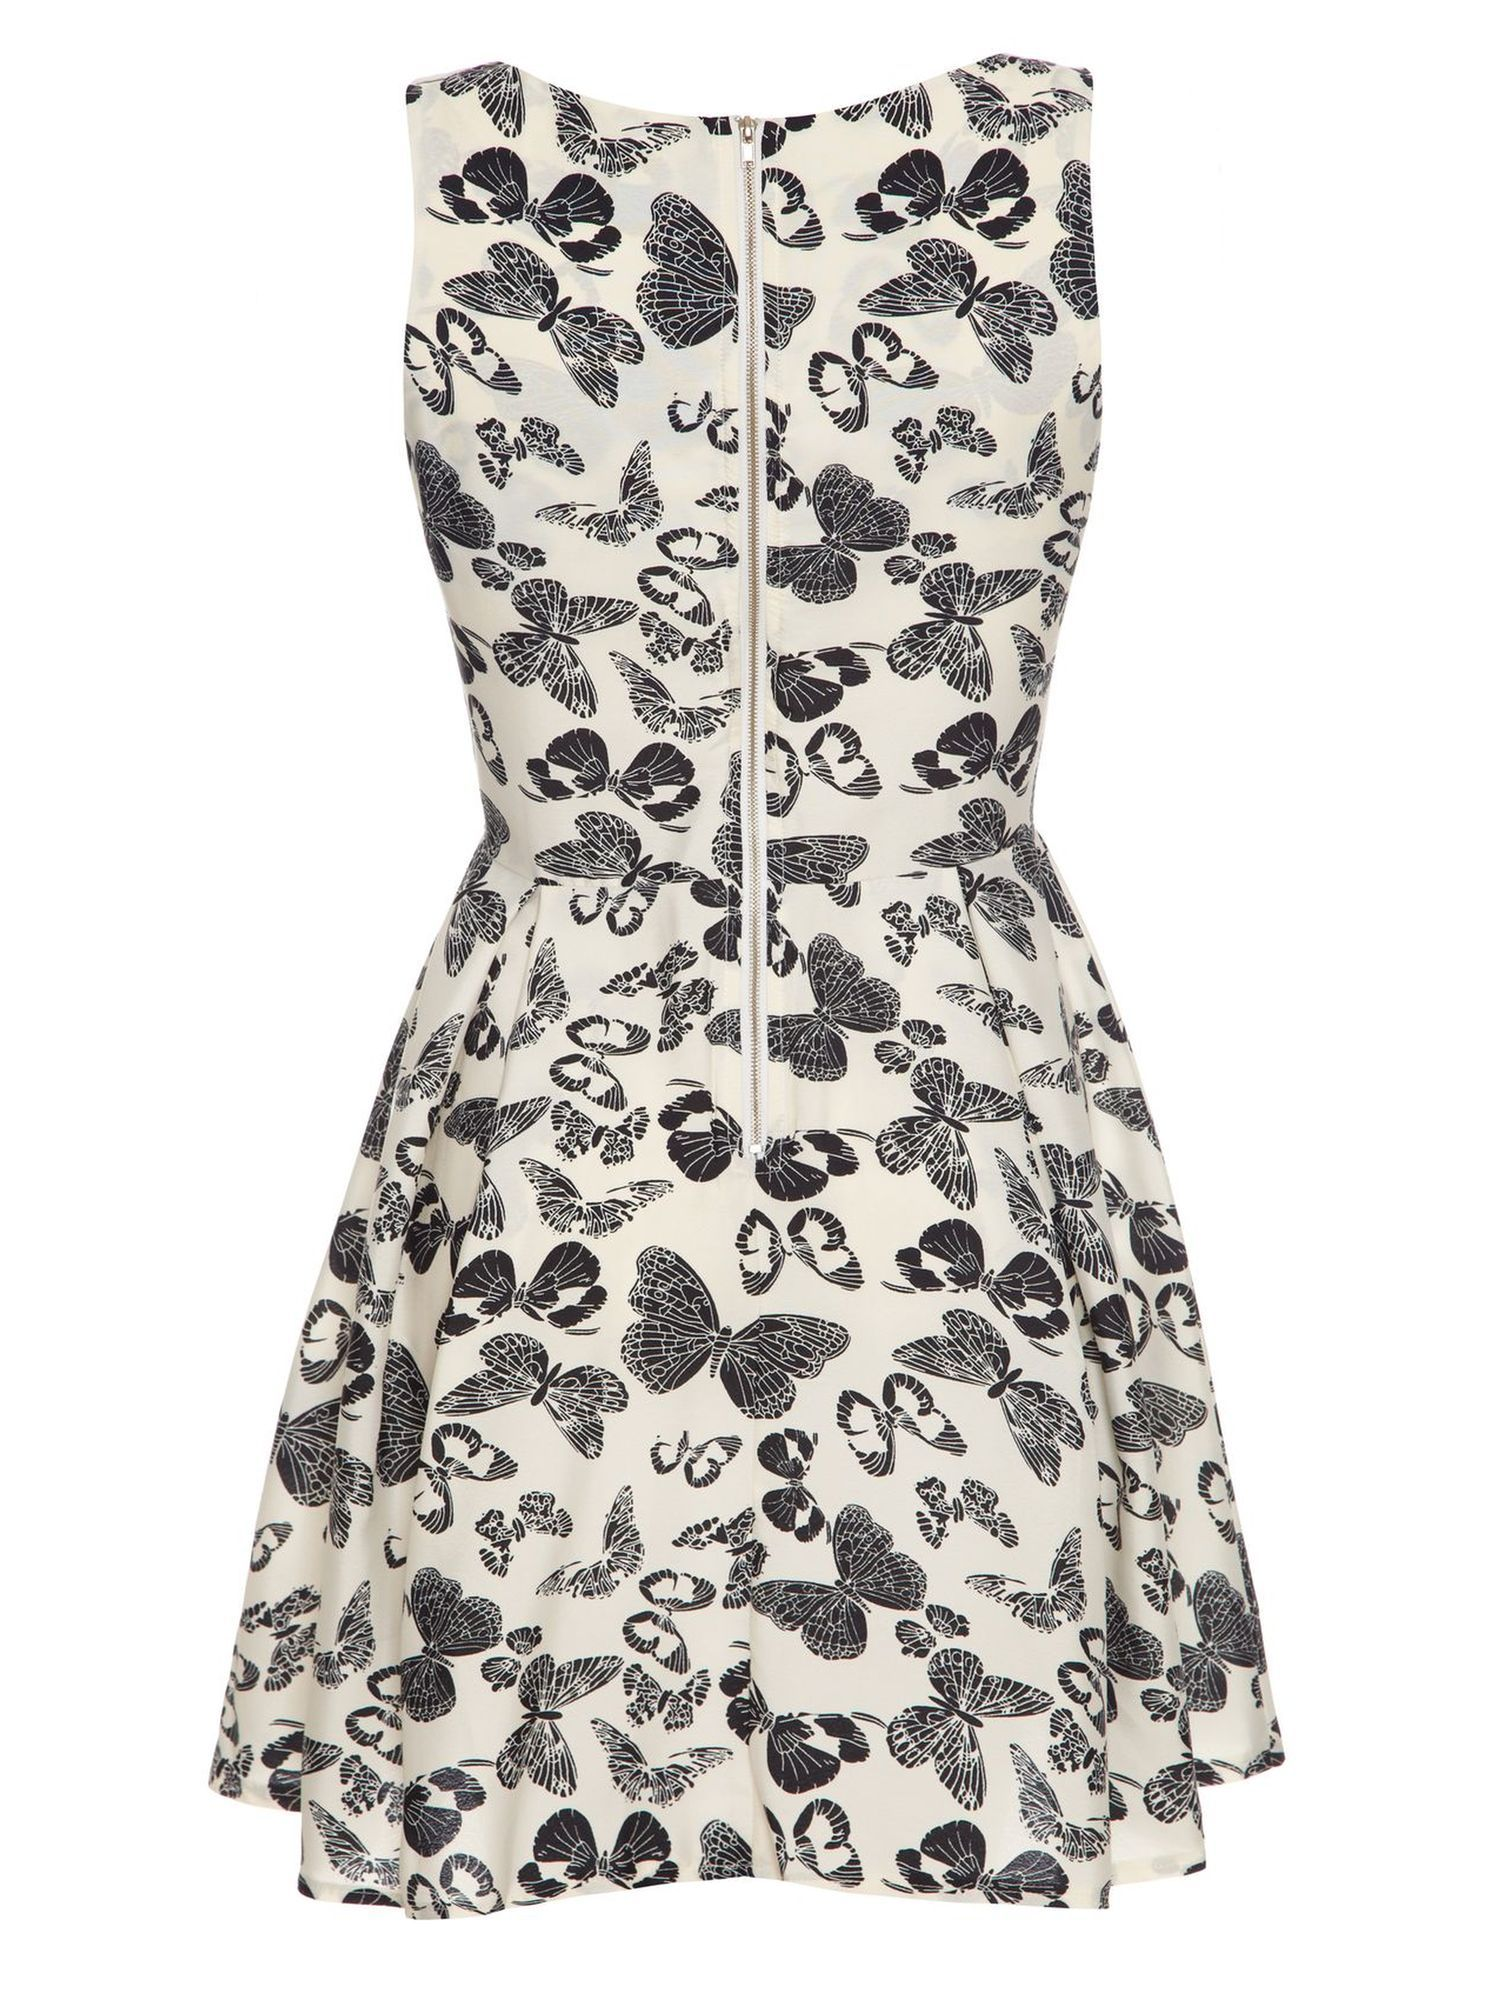 Butterfly Print Zip Black Dress